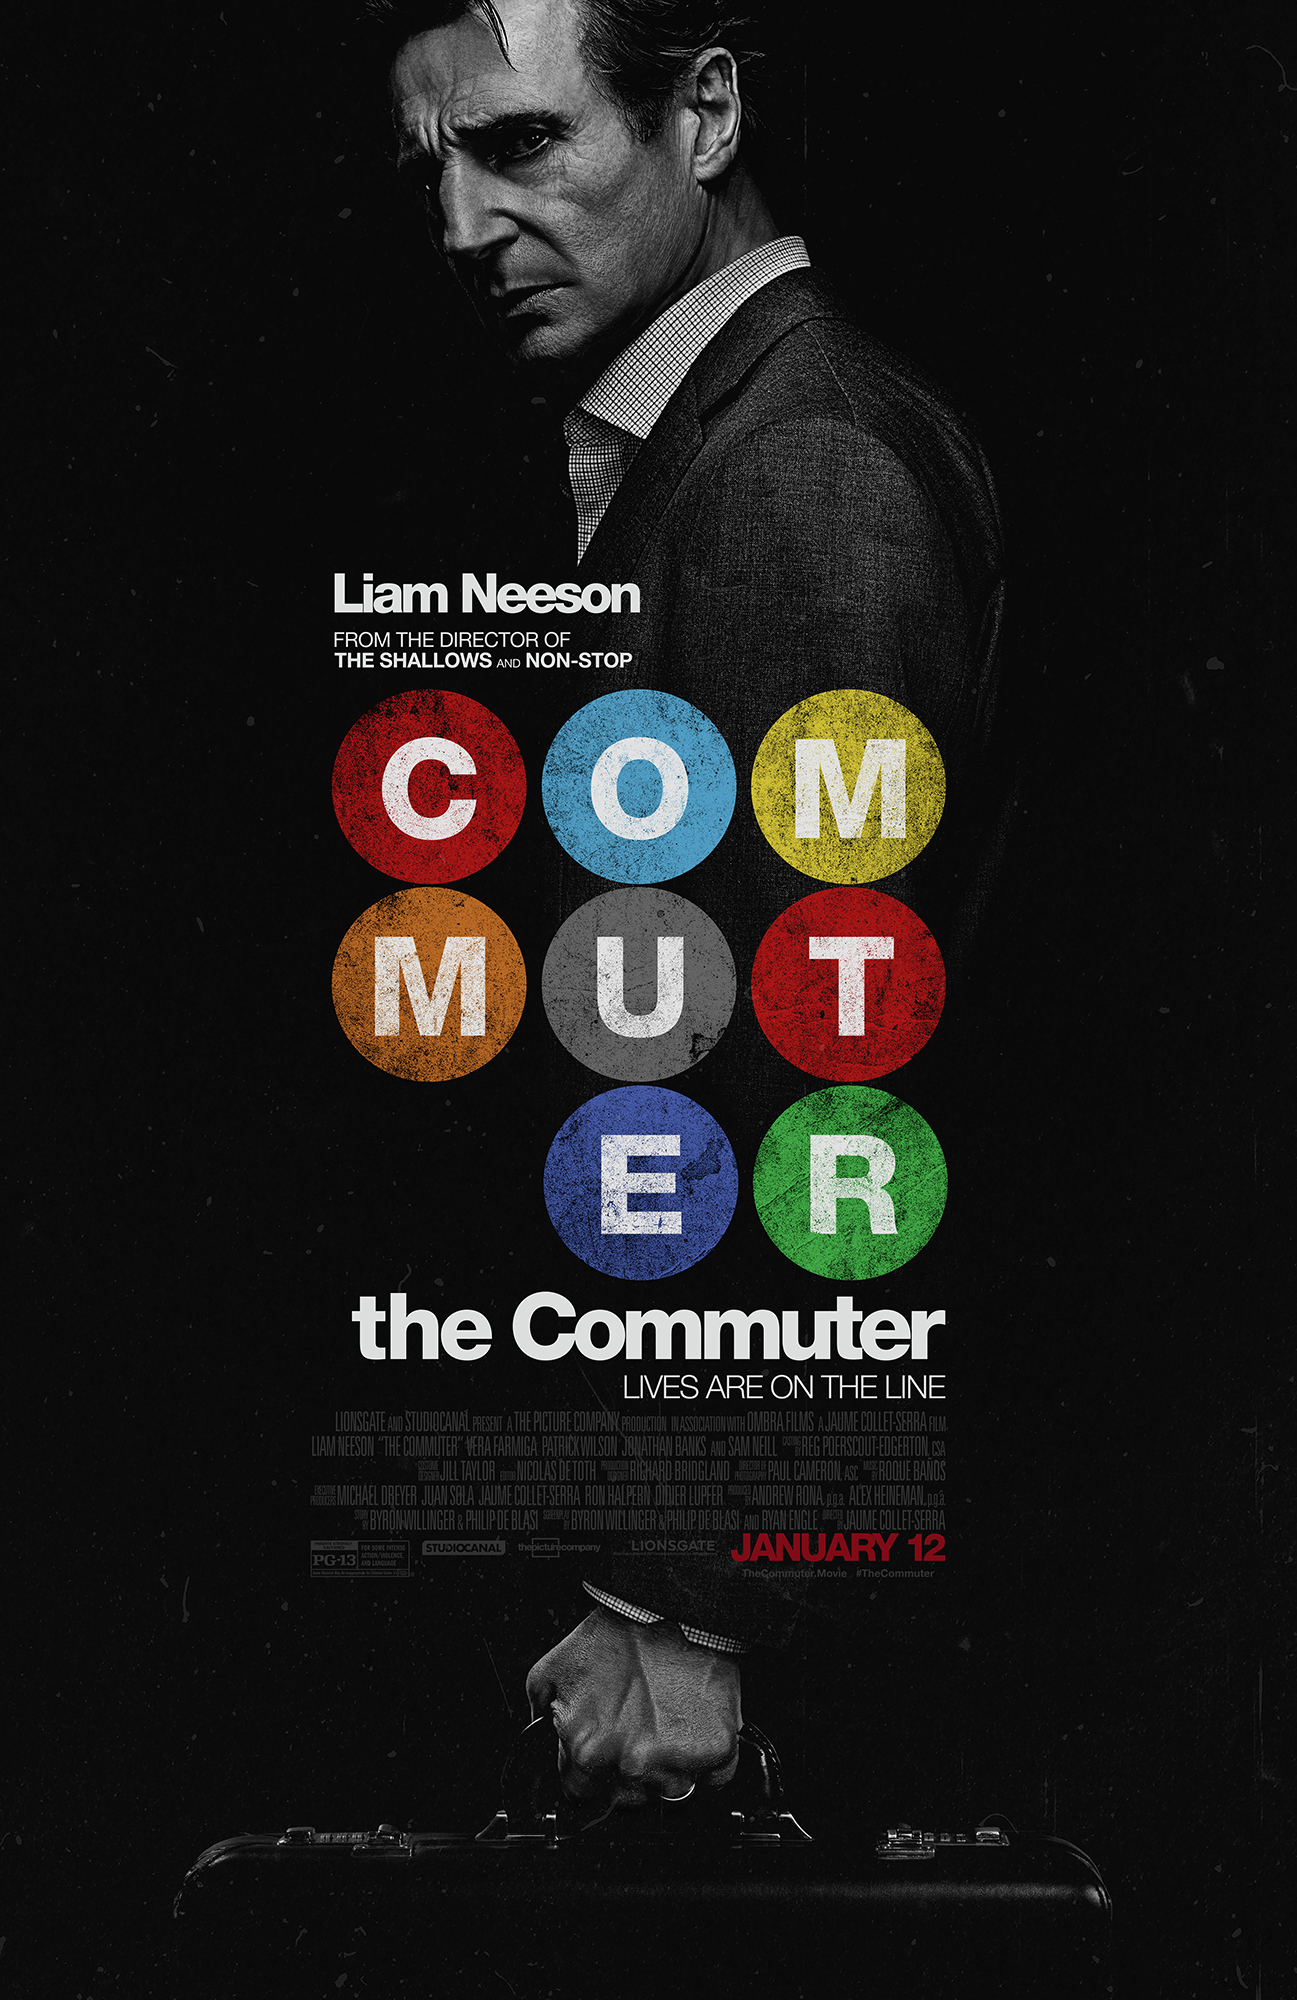 TheCommuter_1Sht_Payoff_VF_100dpi.jpg